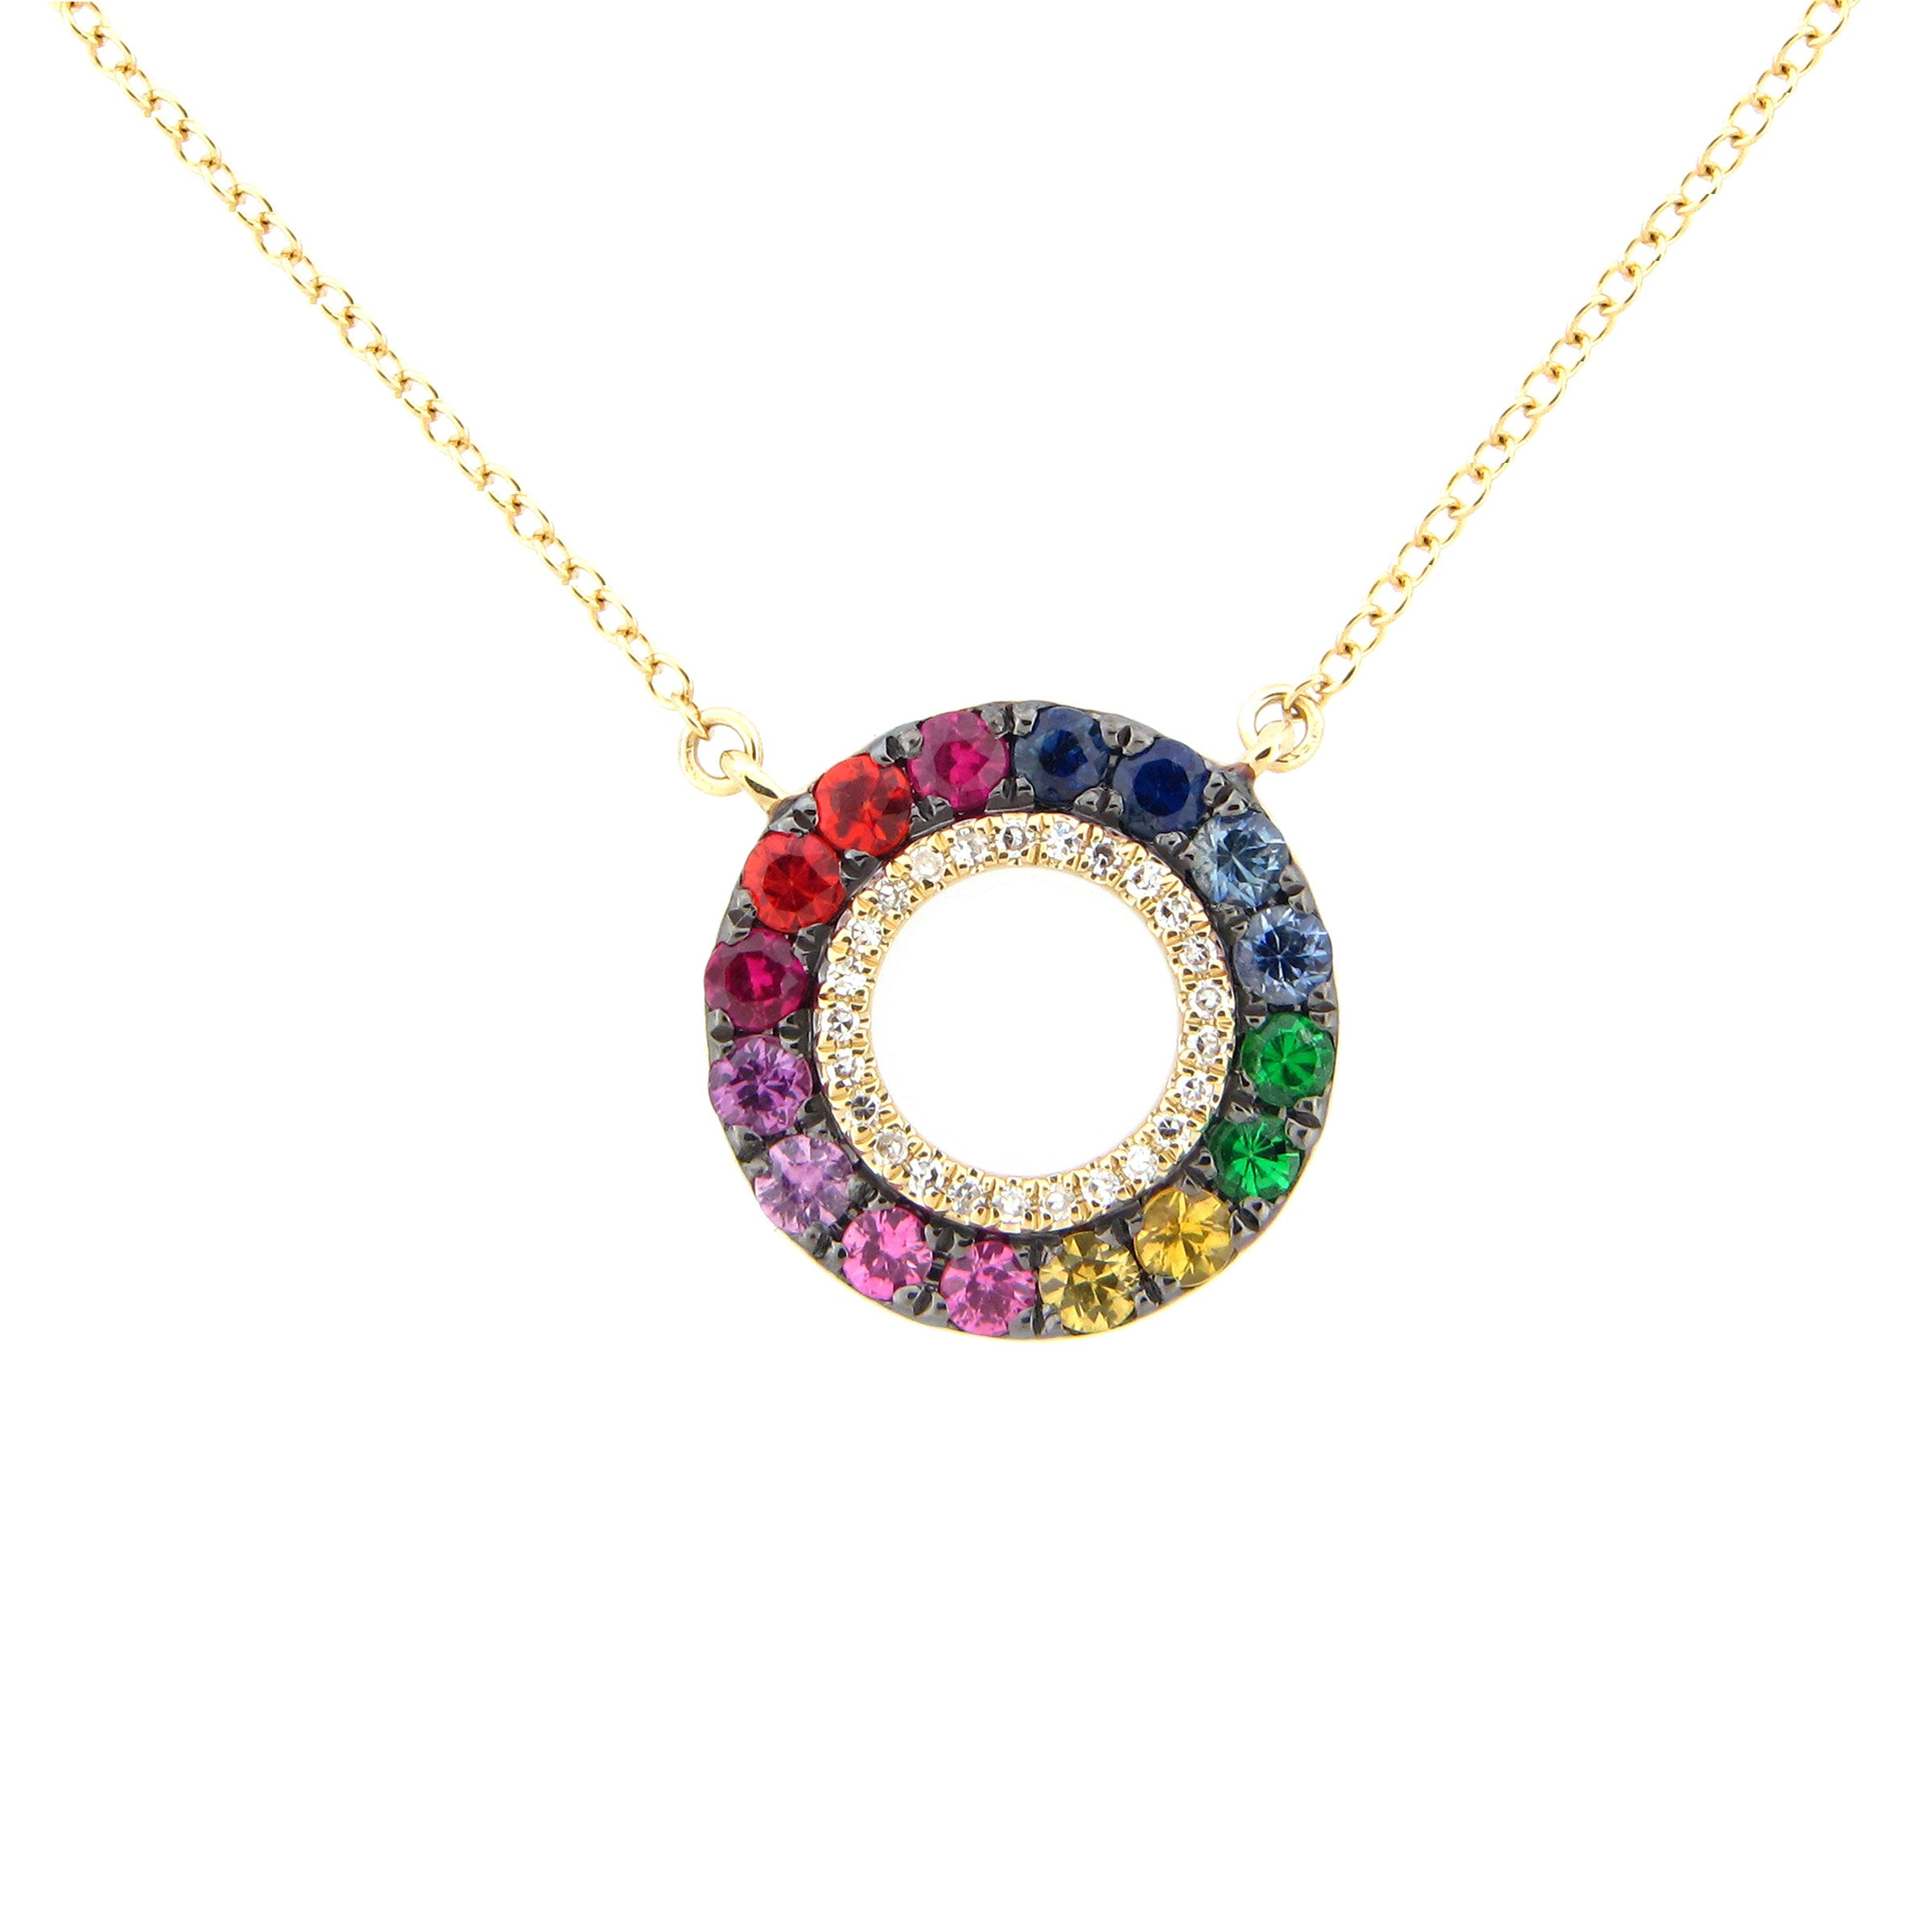 Rainbow Gemstone and Diamond Necklace, 14K Yellow Gold